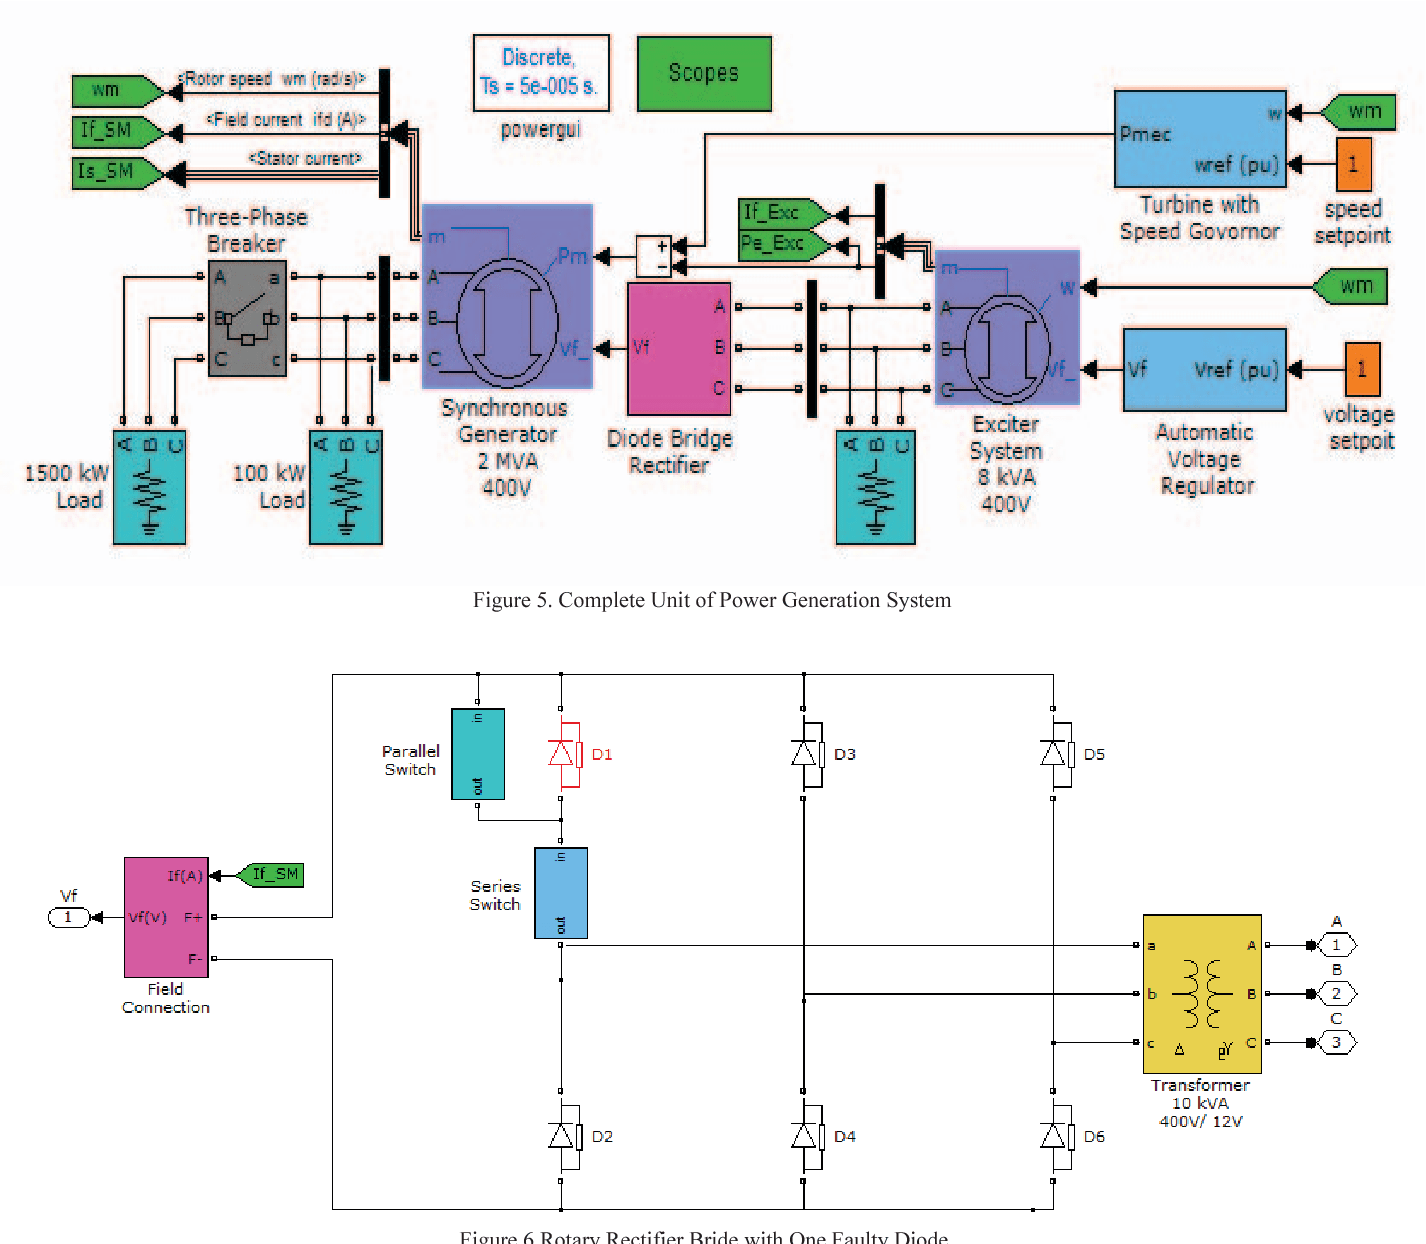 hight resolution of complete unit of power generation system